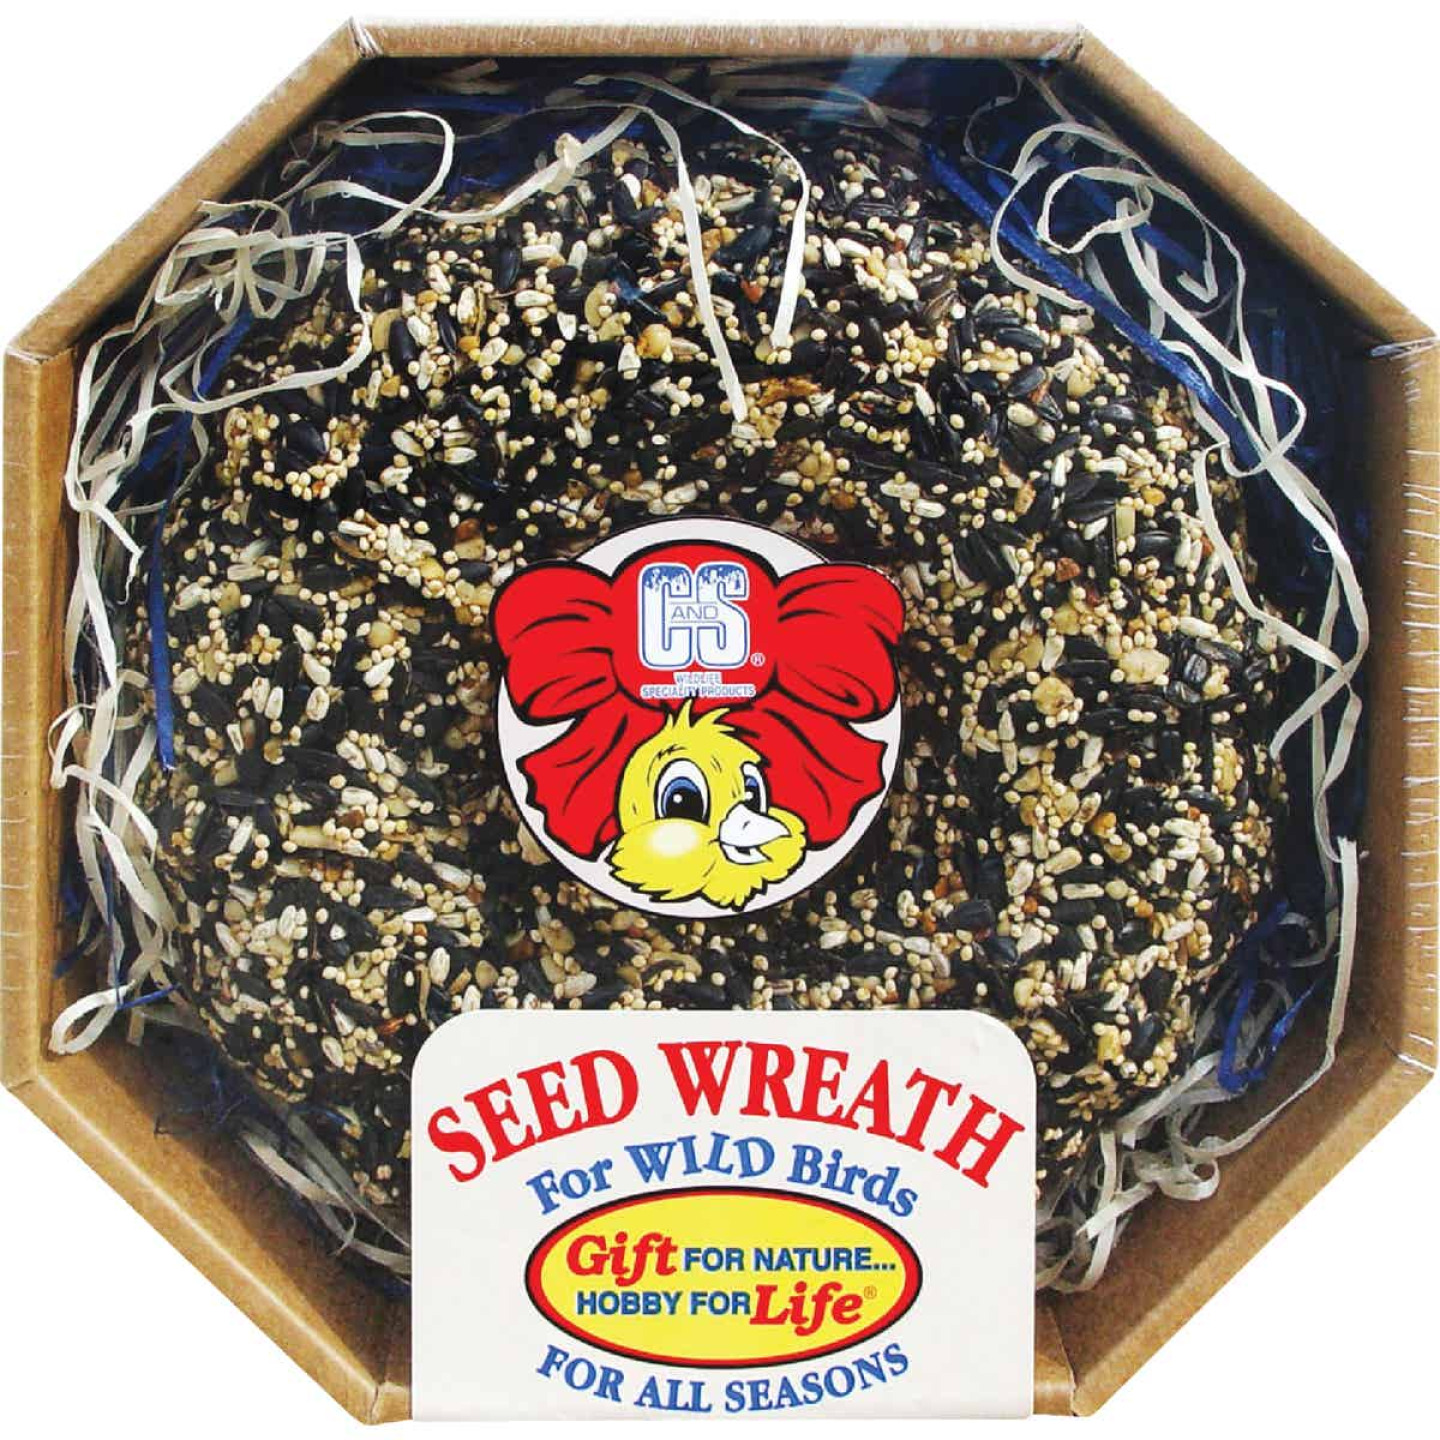 C&S 2.6 Lb. Wild Bird Seed Wreath Image 1